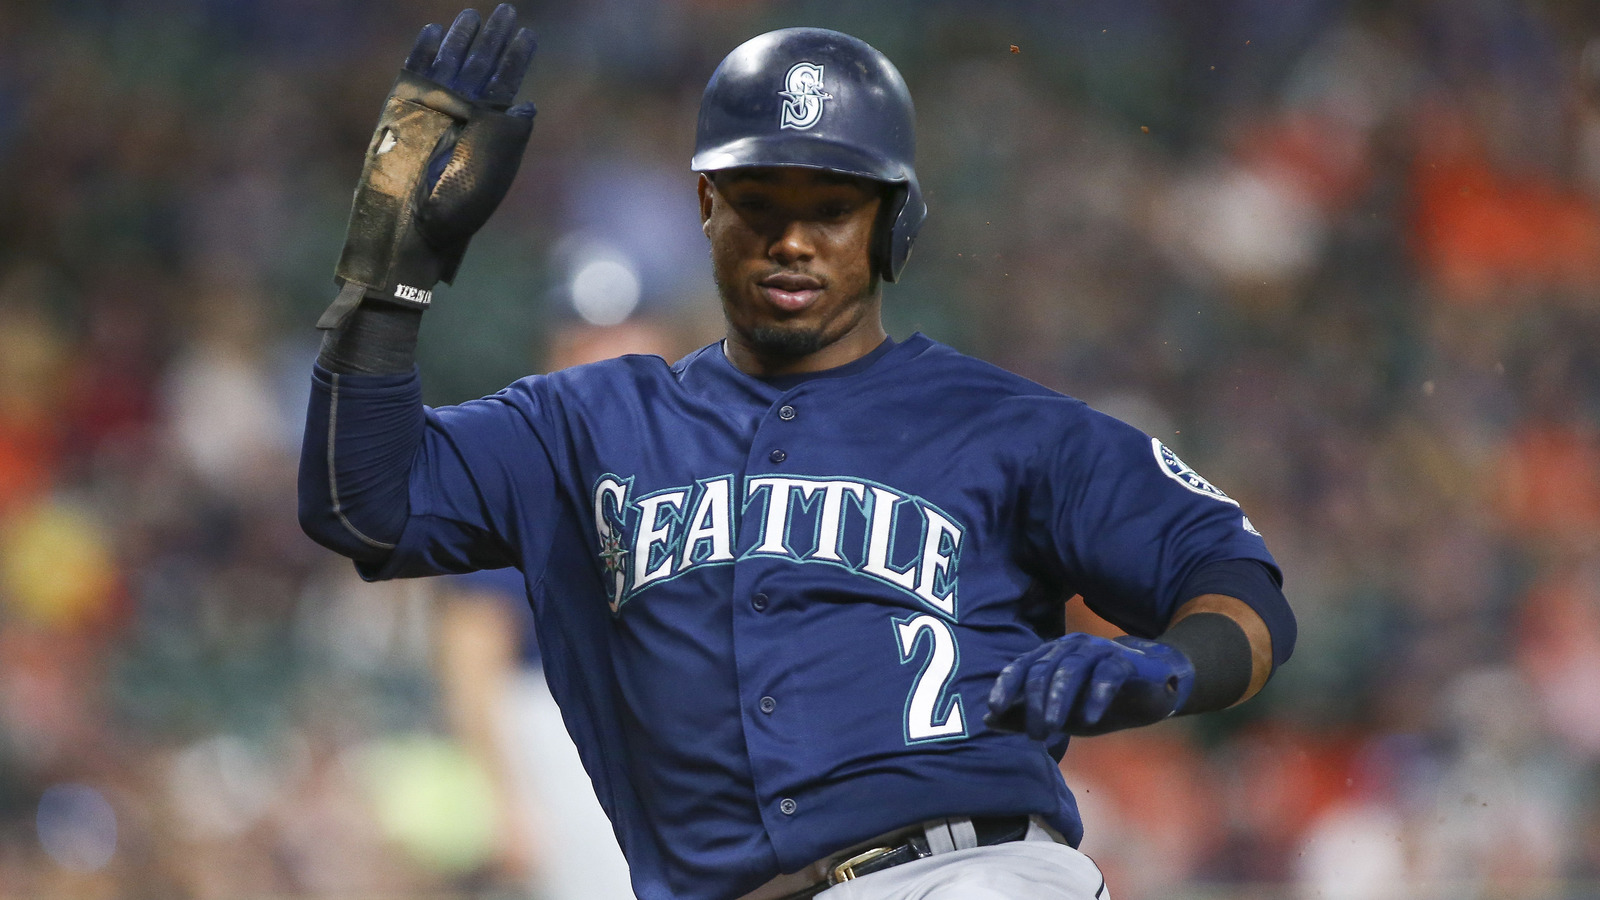 Mariners manager benched Jean Segura for lack of hustle